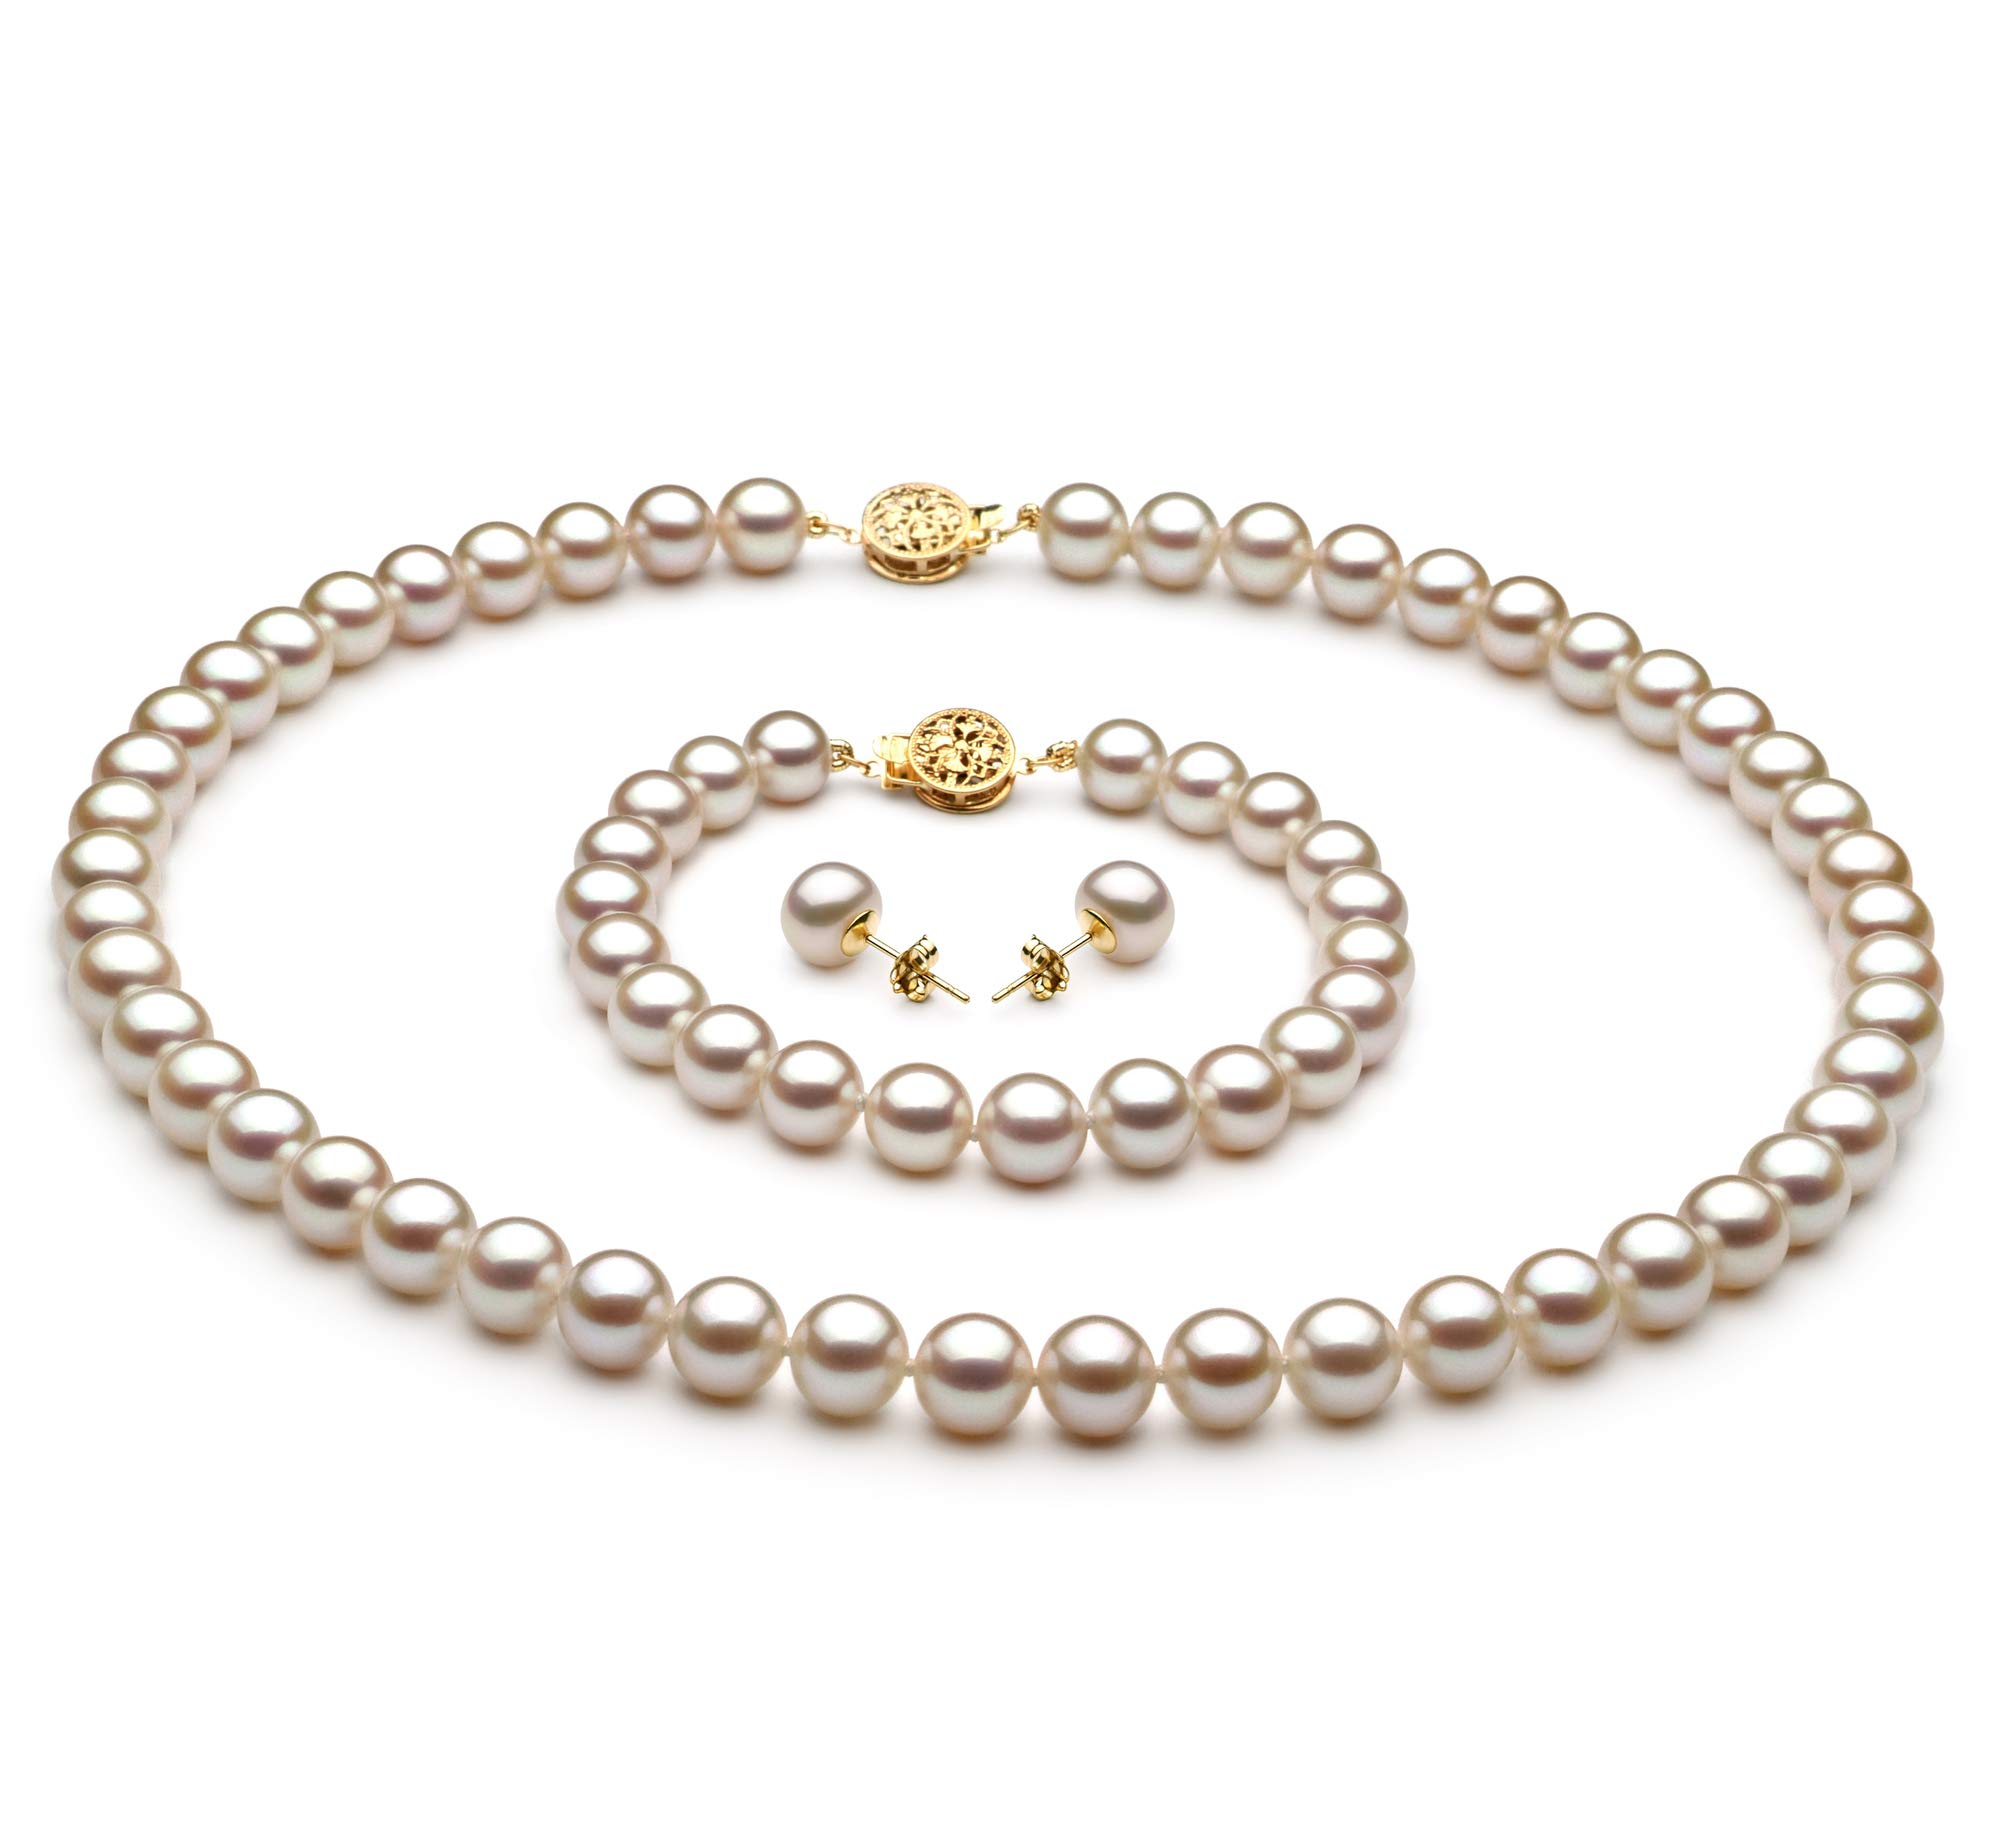 White 7-8mm AAA Quality Freshwater Gold filled Cultured Pearl Set For Women-18 in Princess length